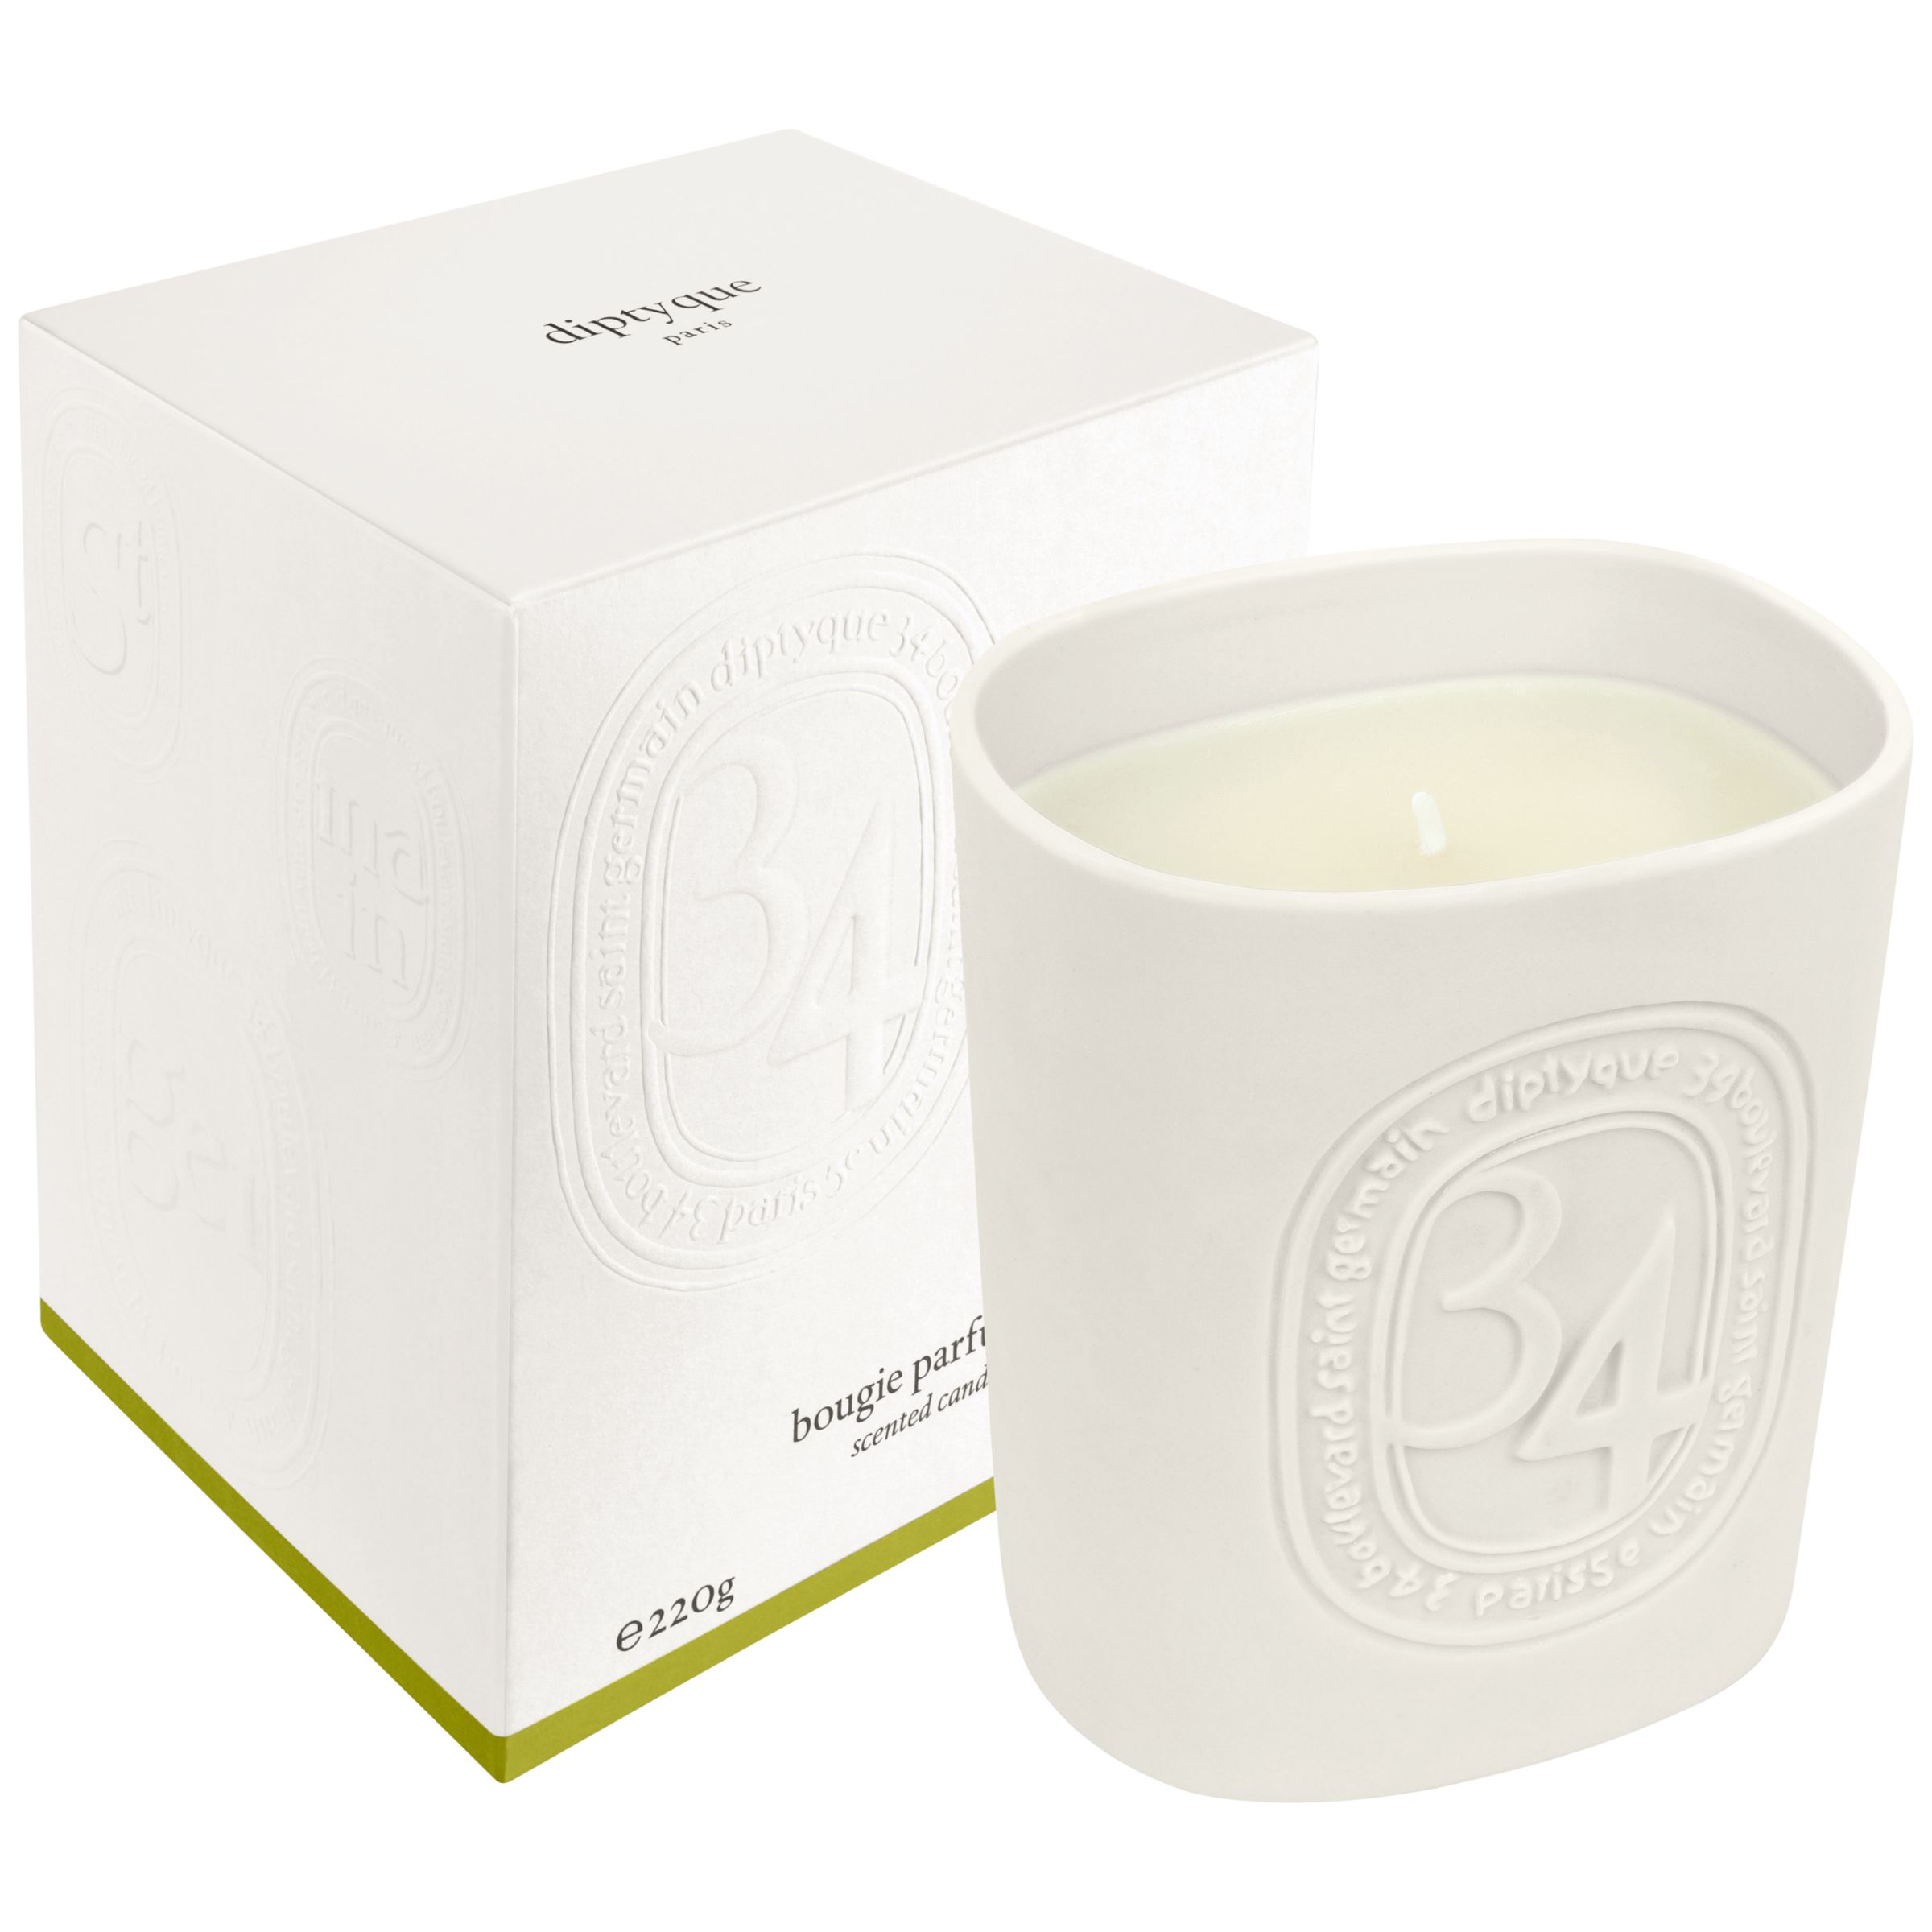 Diptyque Diptyque 34 Boulevard Saint Germain Scented Candle, 220g